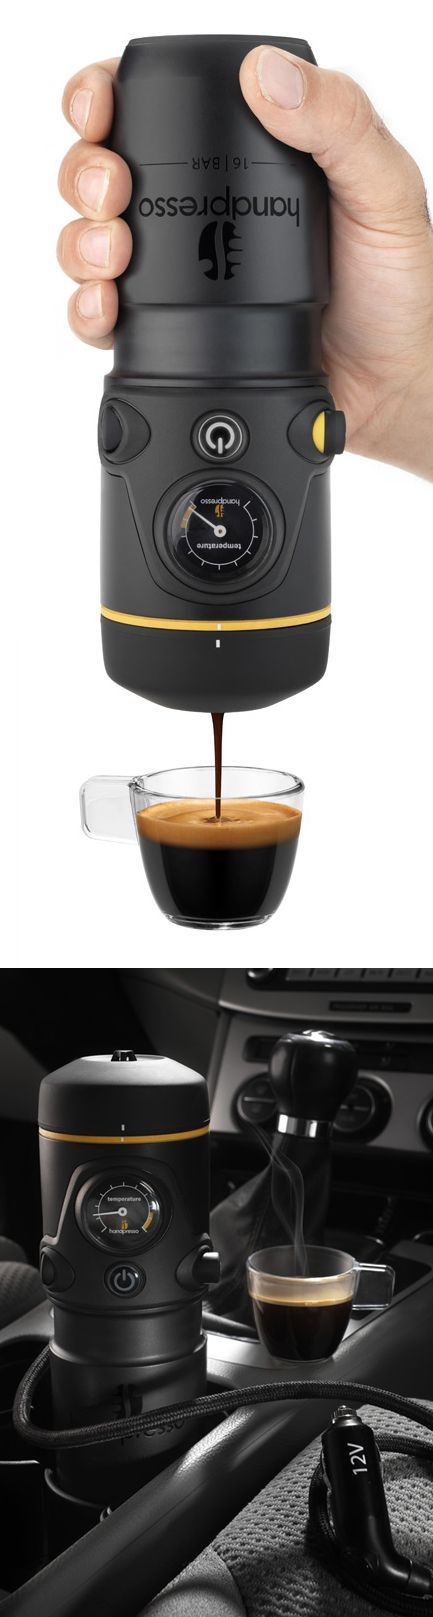 Contact Espresso Outlet for best price. Portable Coffee Maker // simply plug the Handpresso into your car and have fresh brewed espresso on the go within minutes.